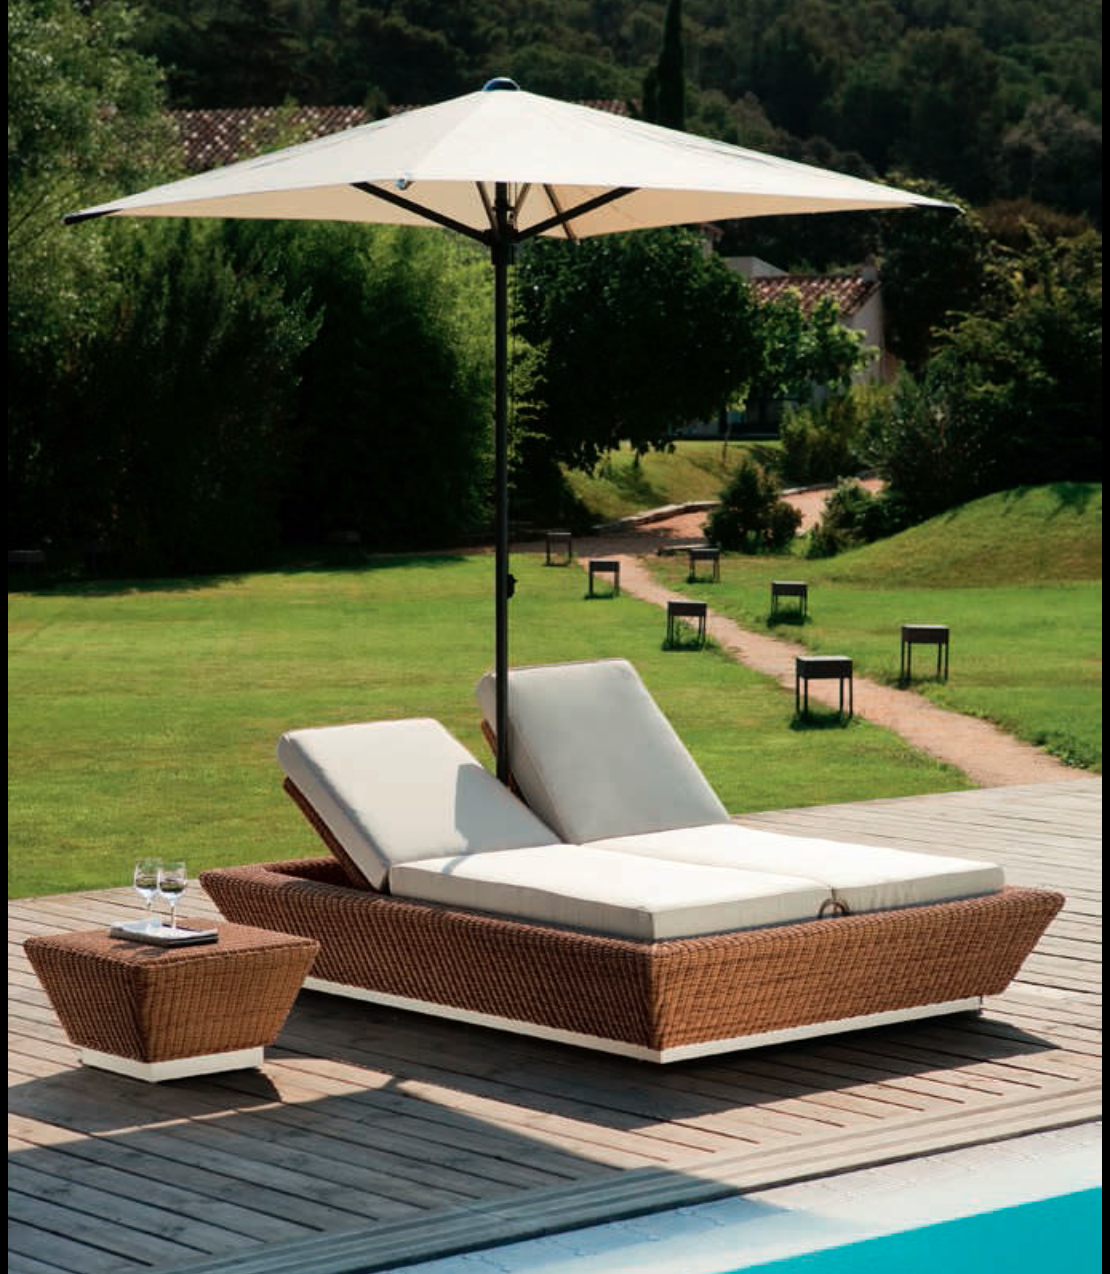 Emejing transat jardin design contemporary awesome for Chaise longue en resine